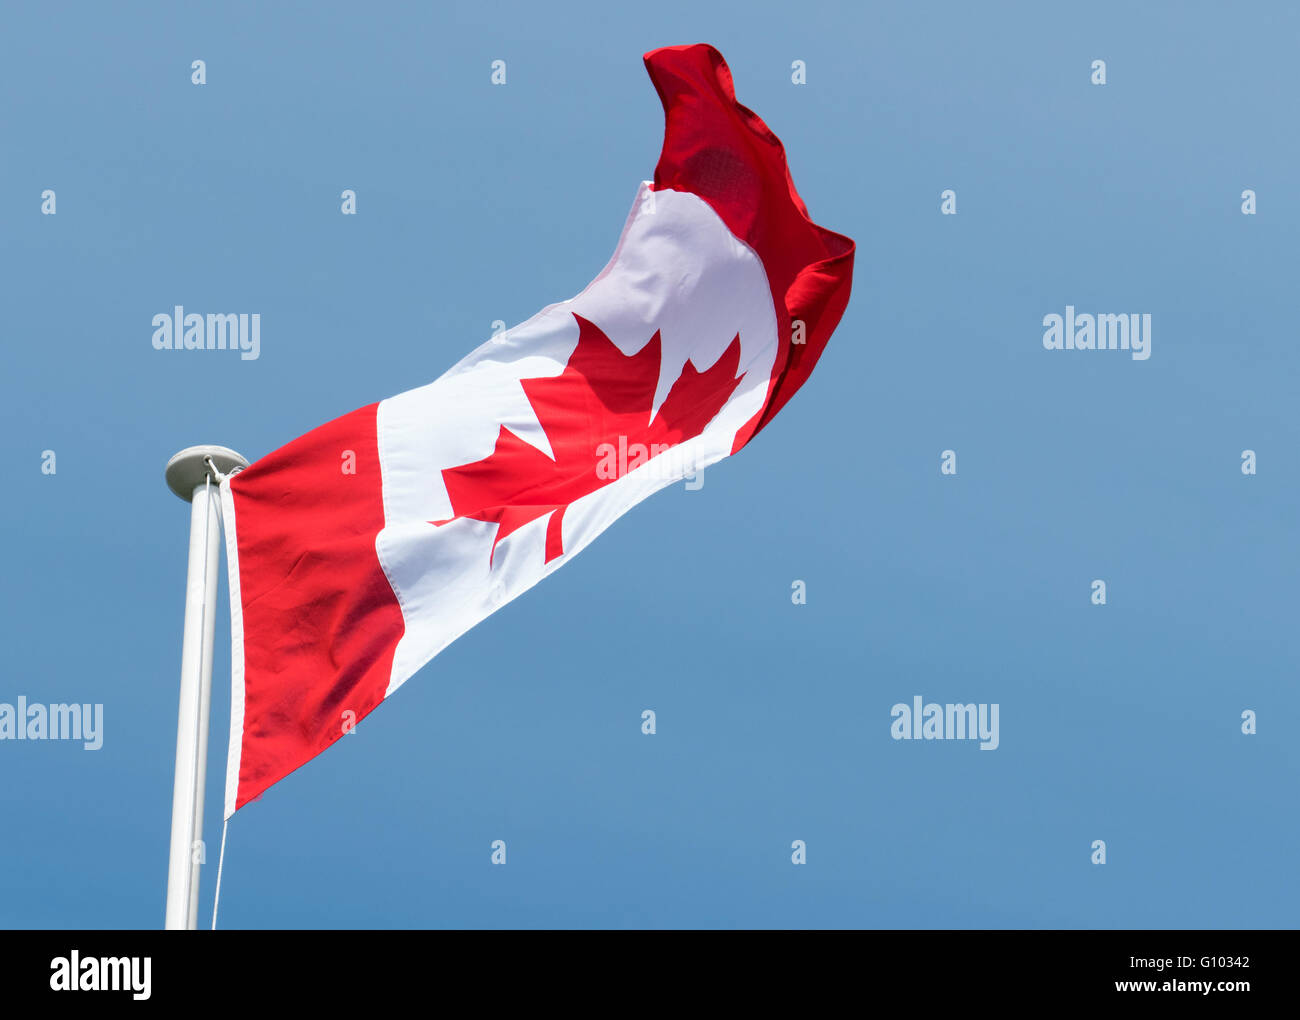 Canadian flag of Canada Maple Leaf blowing in the wind, big blue sky. - Stock Image